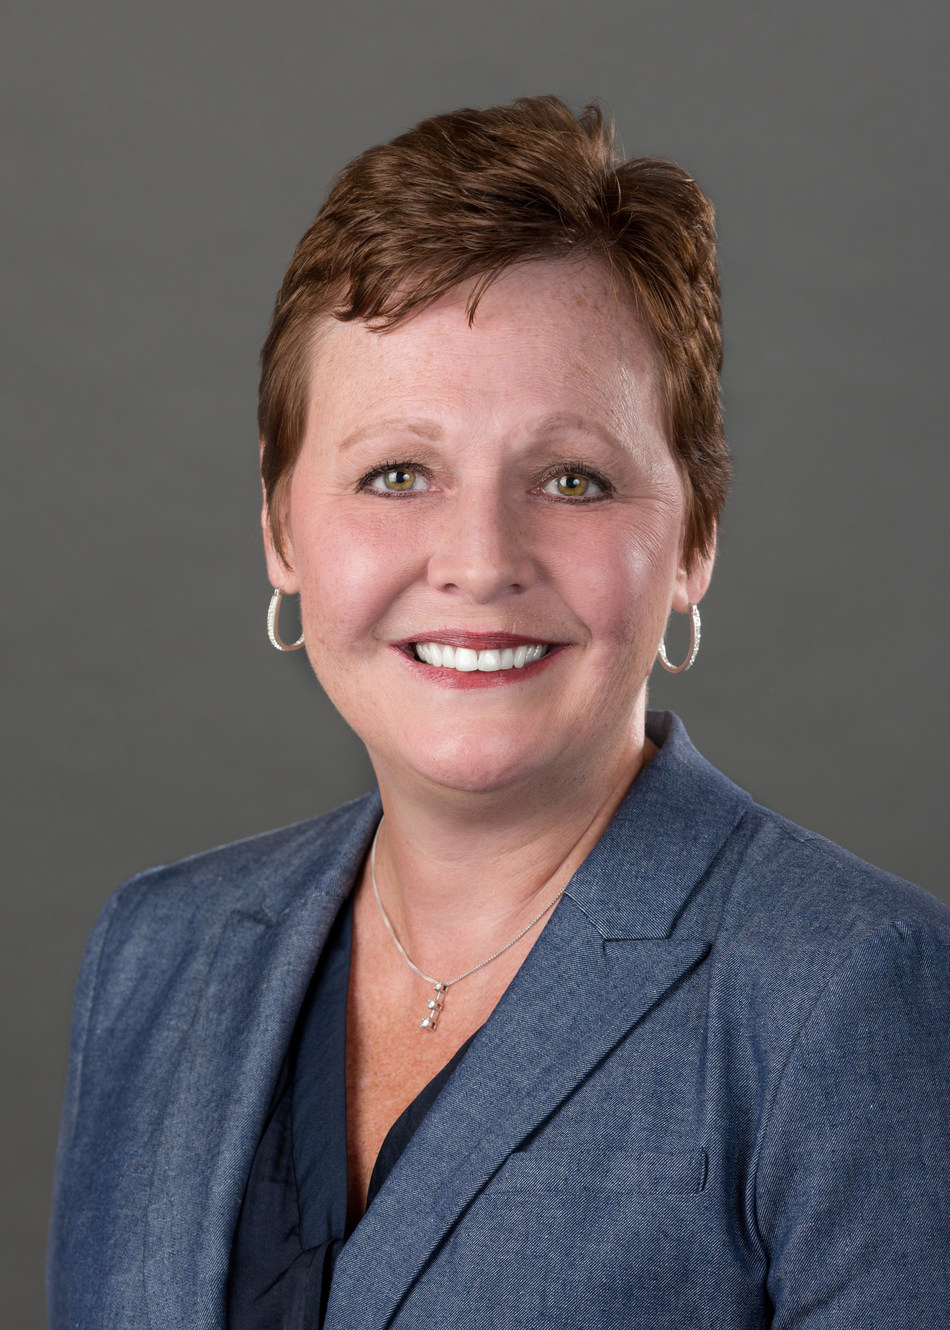 Watercrest Senior Living Group proudly welcomes Dawn Osterweil as Executive Director of Watercrest Naples Assisted Living and Memory Care, opening this fall in Naples, Florida.